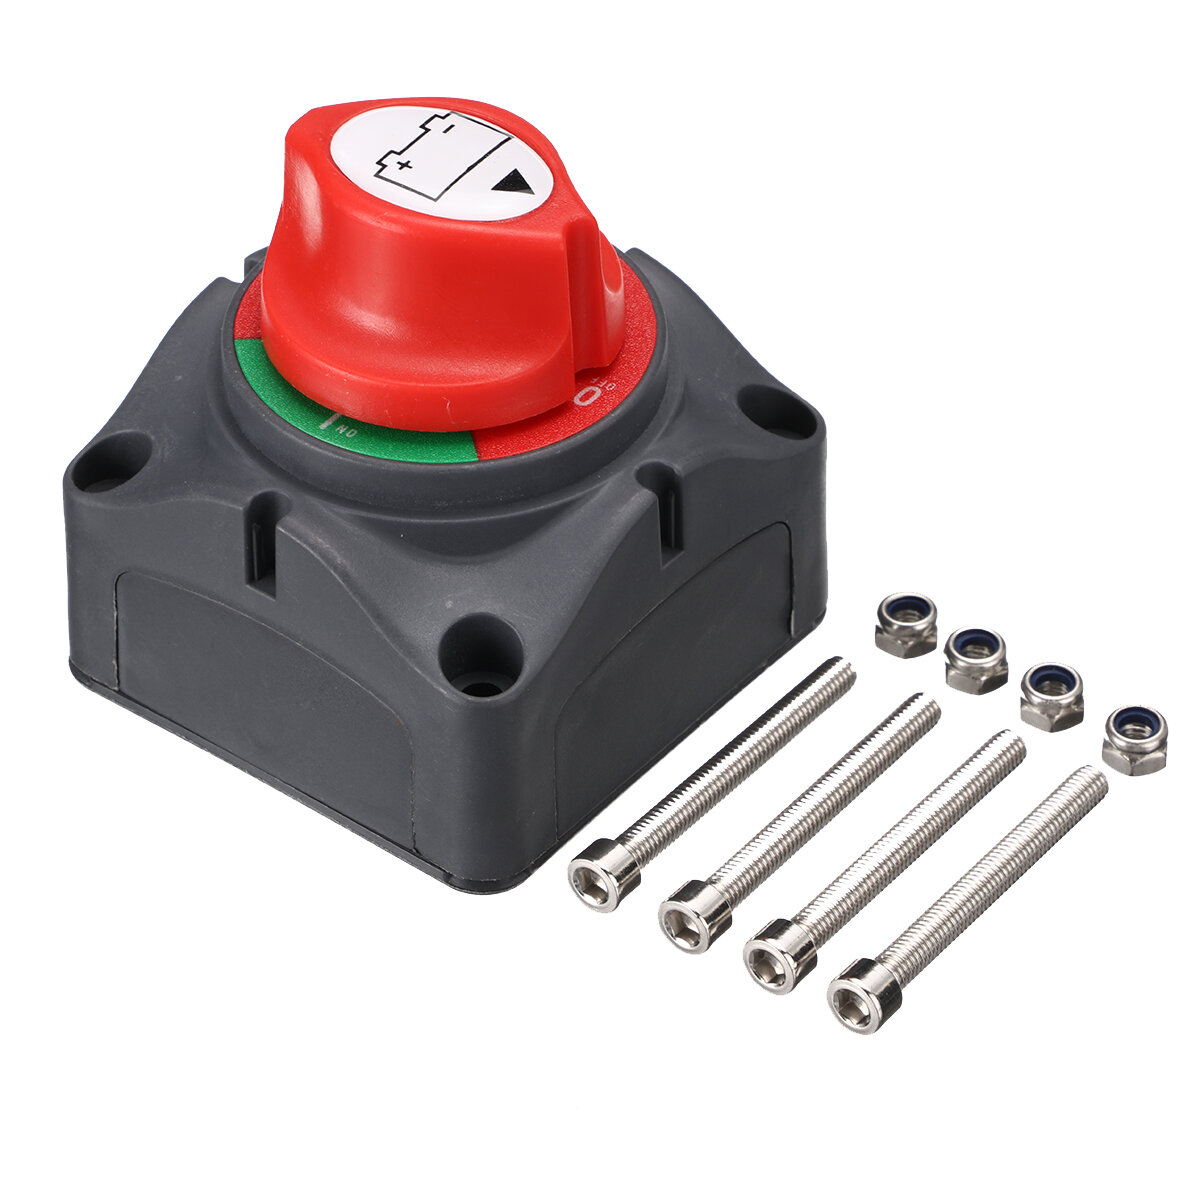 12V-48V 100A-300A Battery Master Switch Car RV Boat Marine Dual System Selector Isolator On/Off